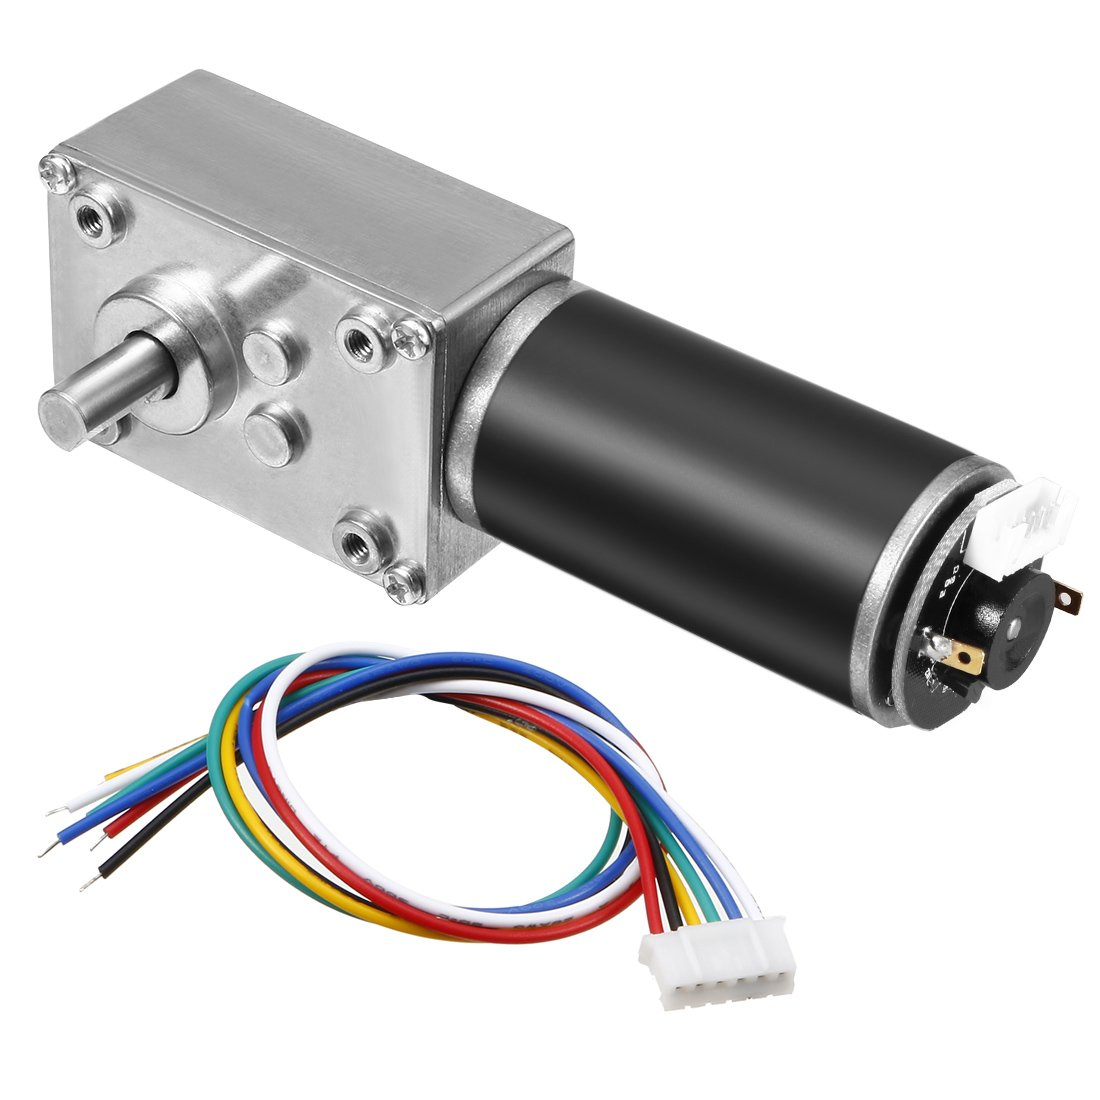 uxcell DC 12V 55RPM 8.5Kg.cm Self-Locking Worm Gear Motor with Encoder and Cable, High Torque Speed Reduction Motor